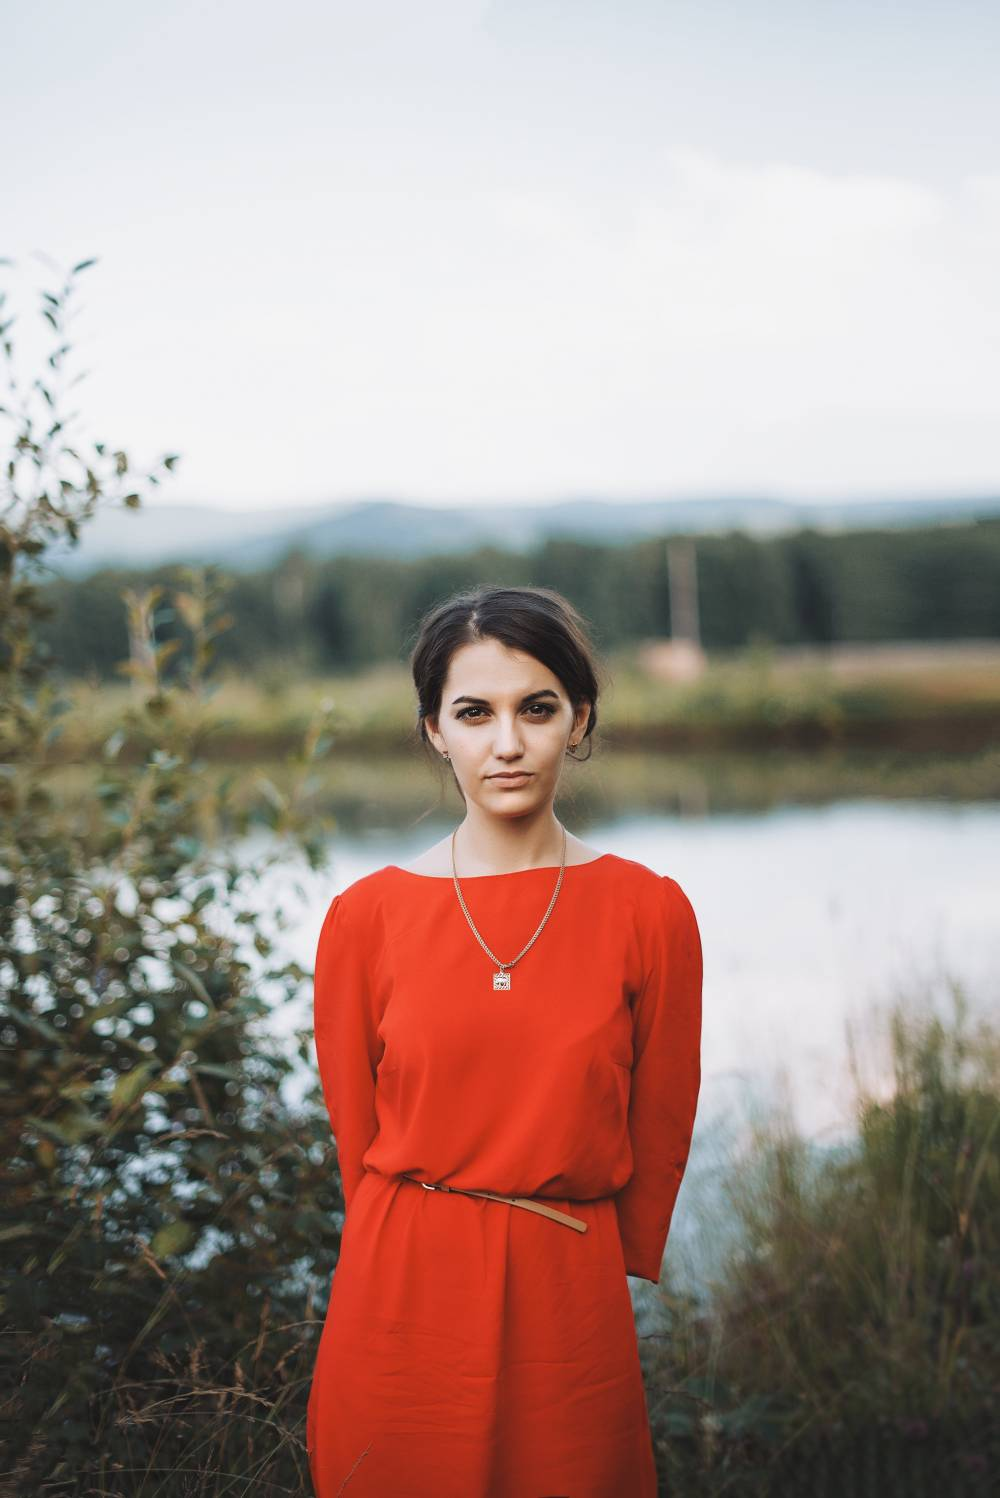 red dress nature pin